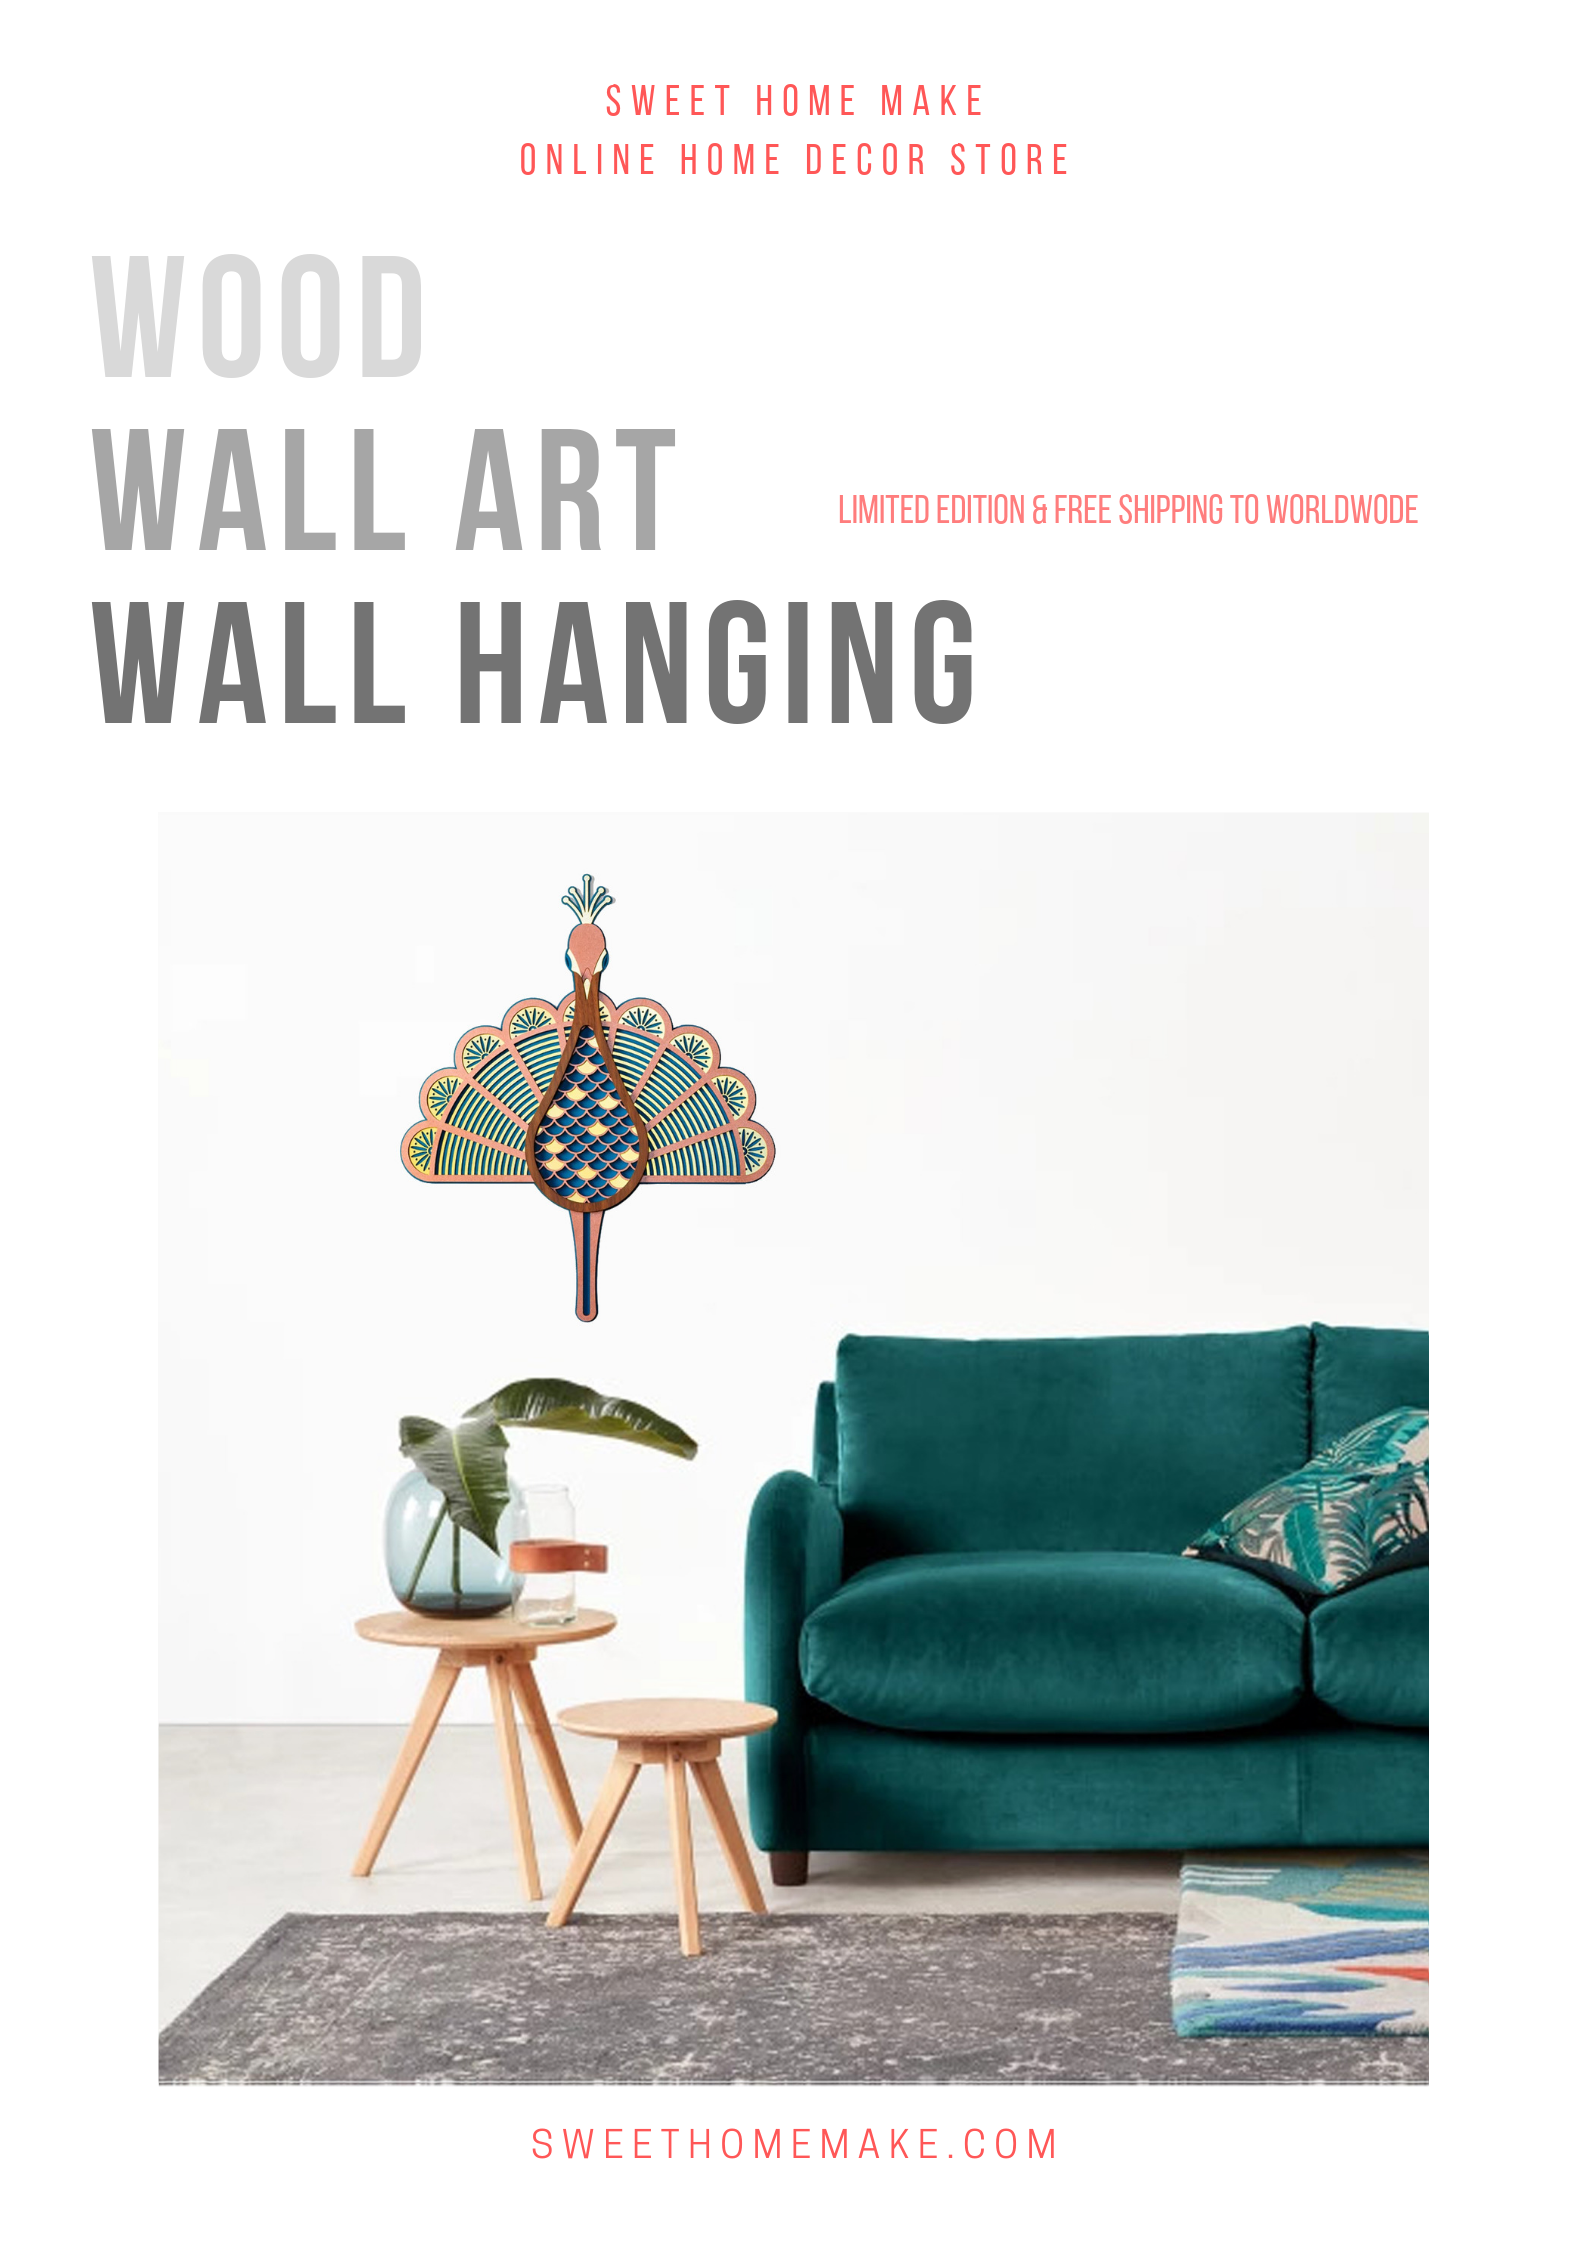 Wood Wall Art with Wall Hanging Peacock